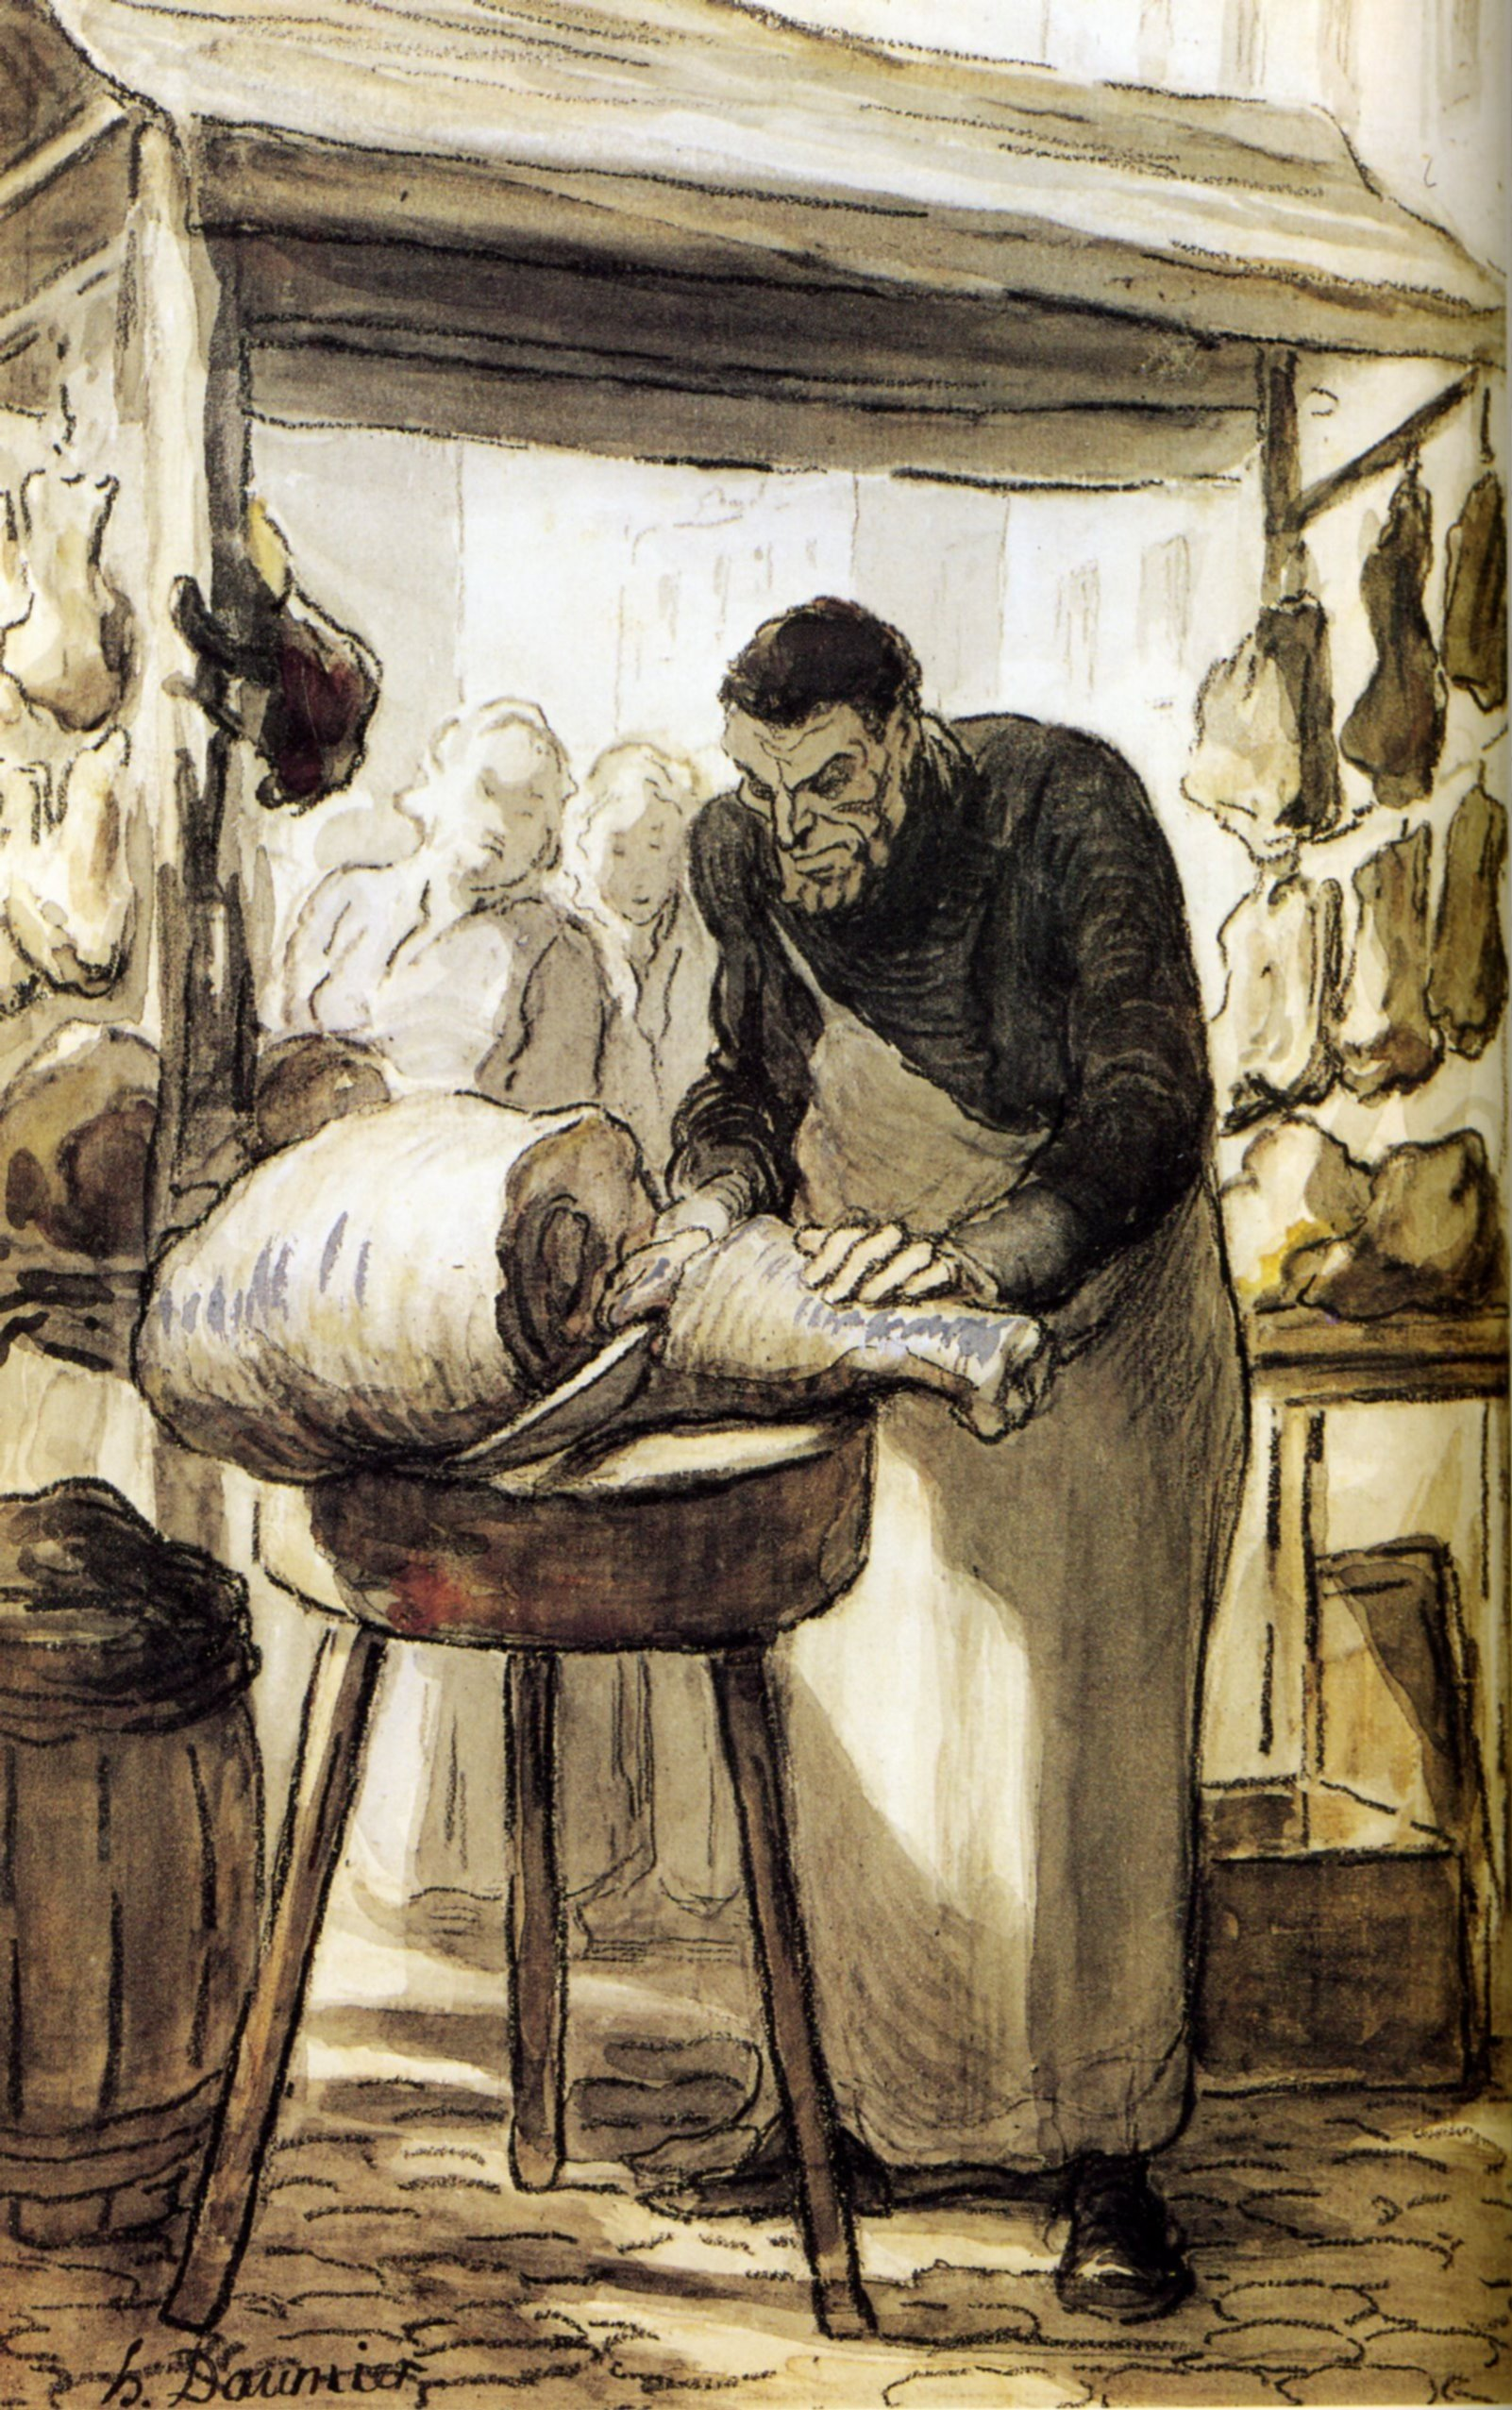 The Butcher - Honore Daumier - WikiArt.org